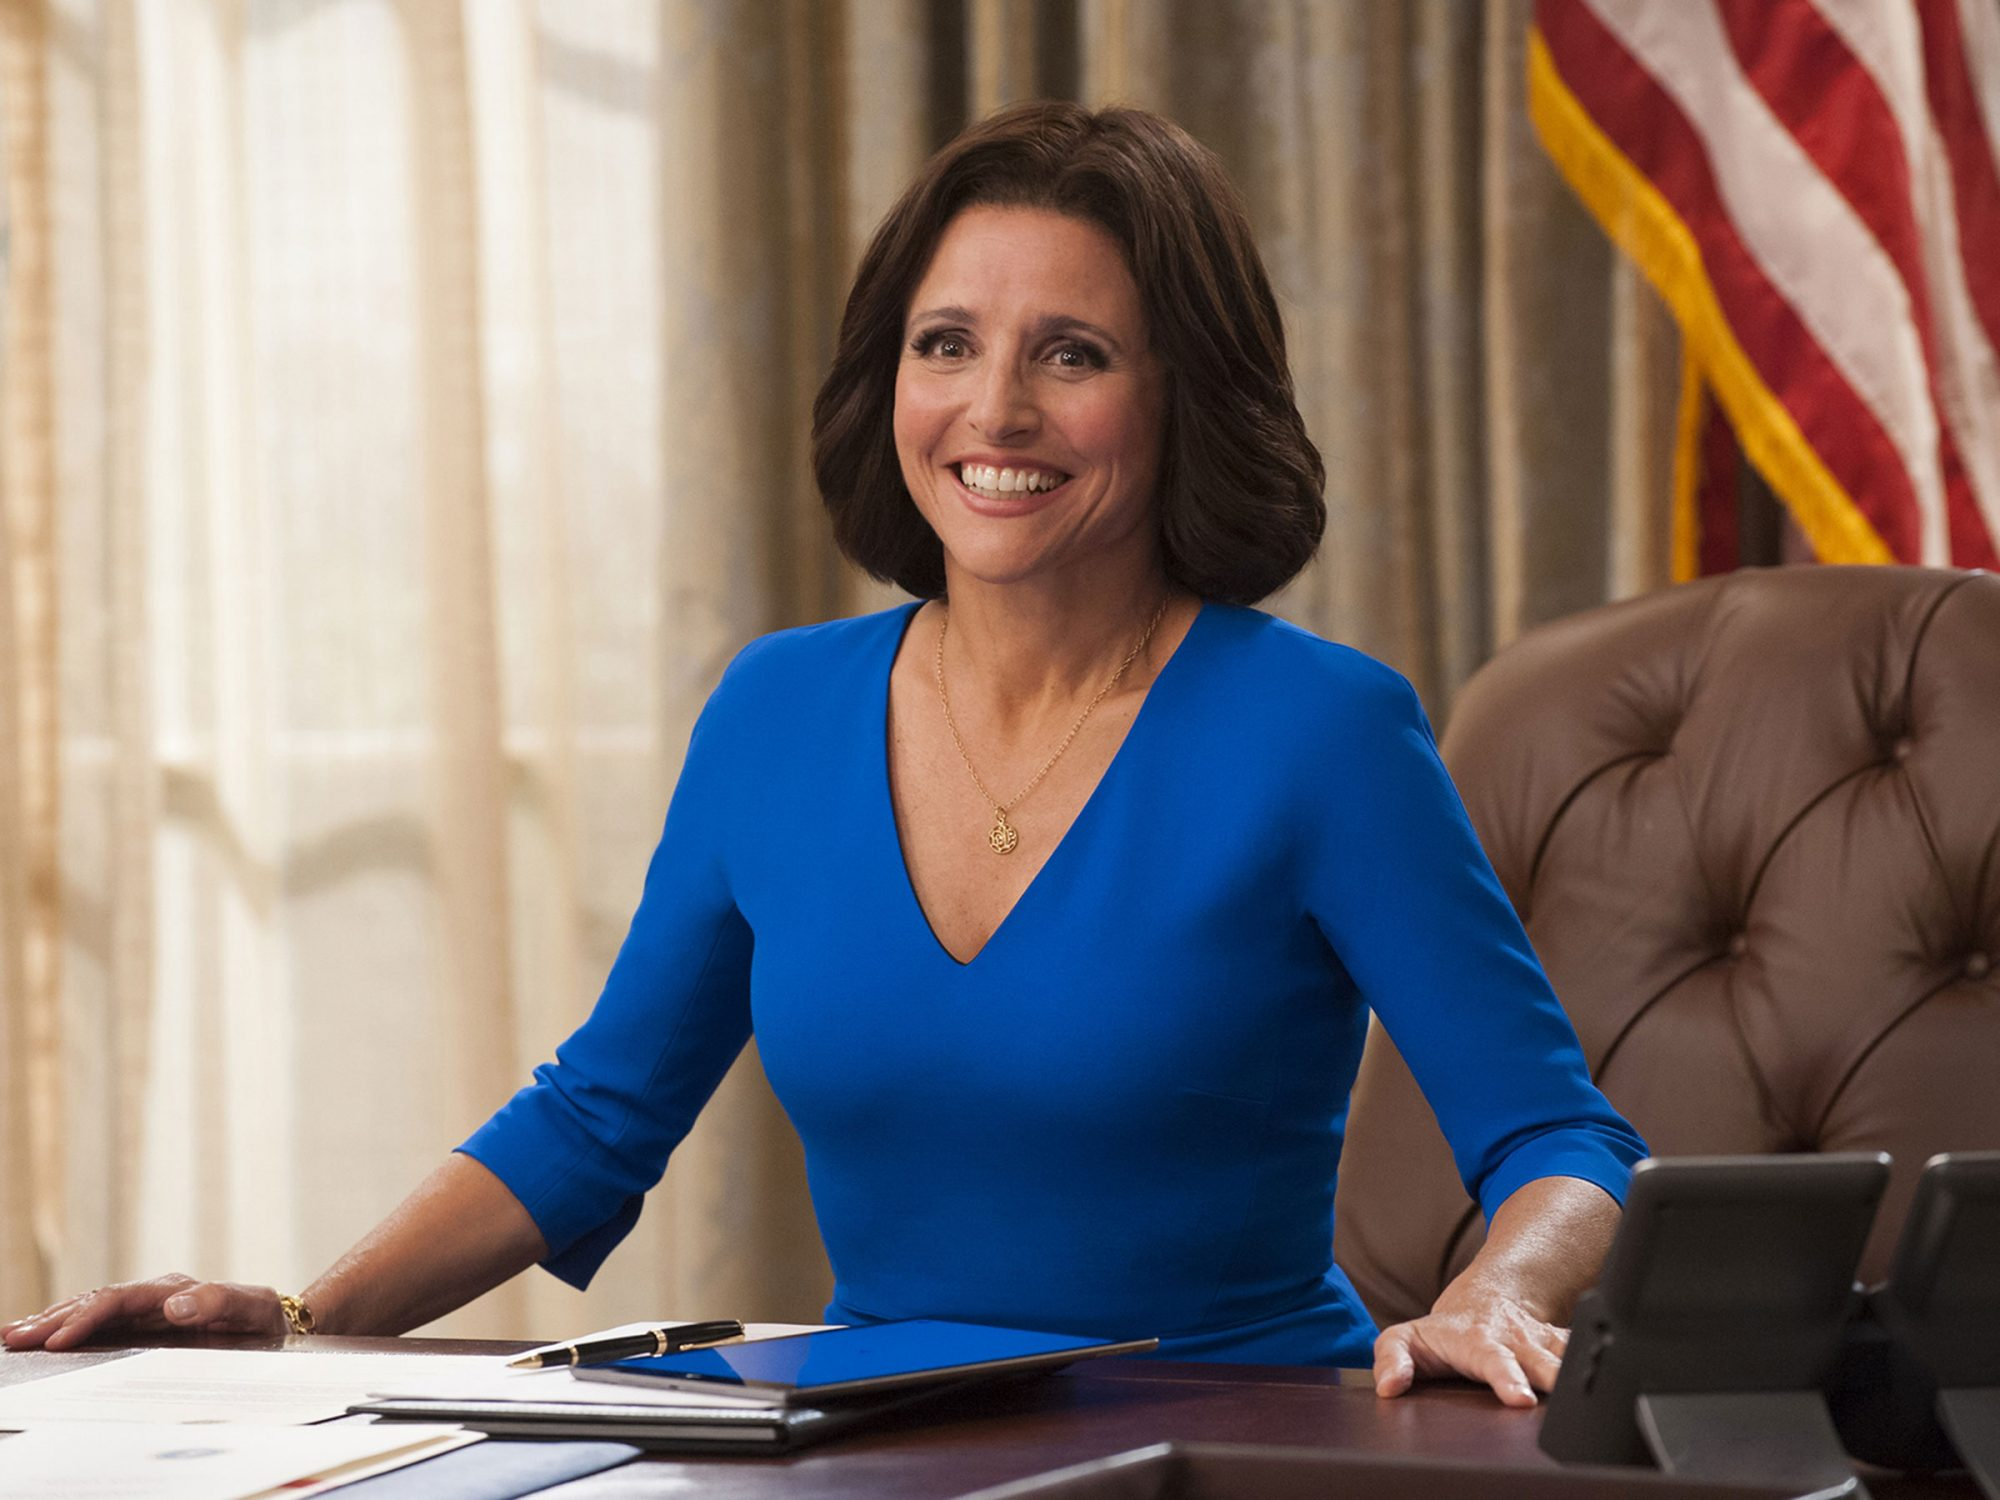 VeepSeason 5, Episode 2 - May, 1, 2016Julia Louis-Dreyfus